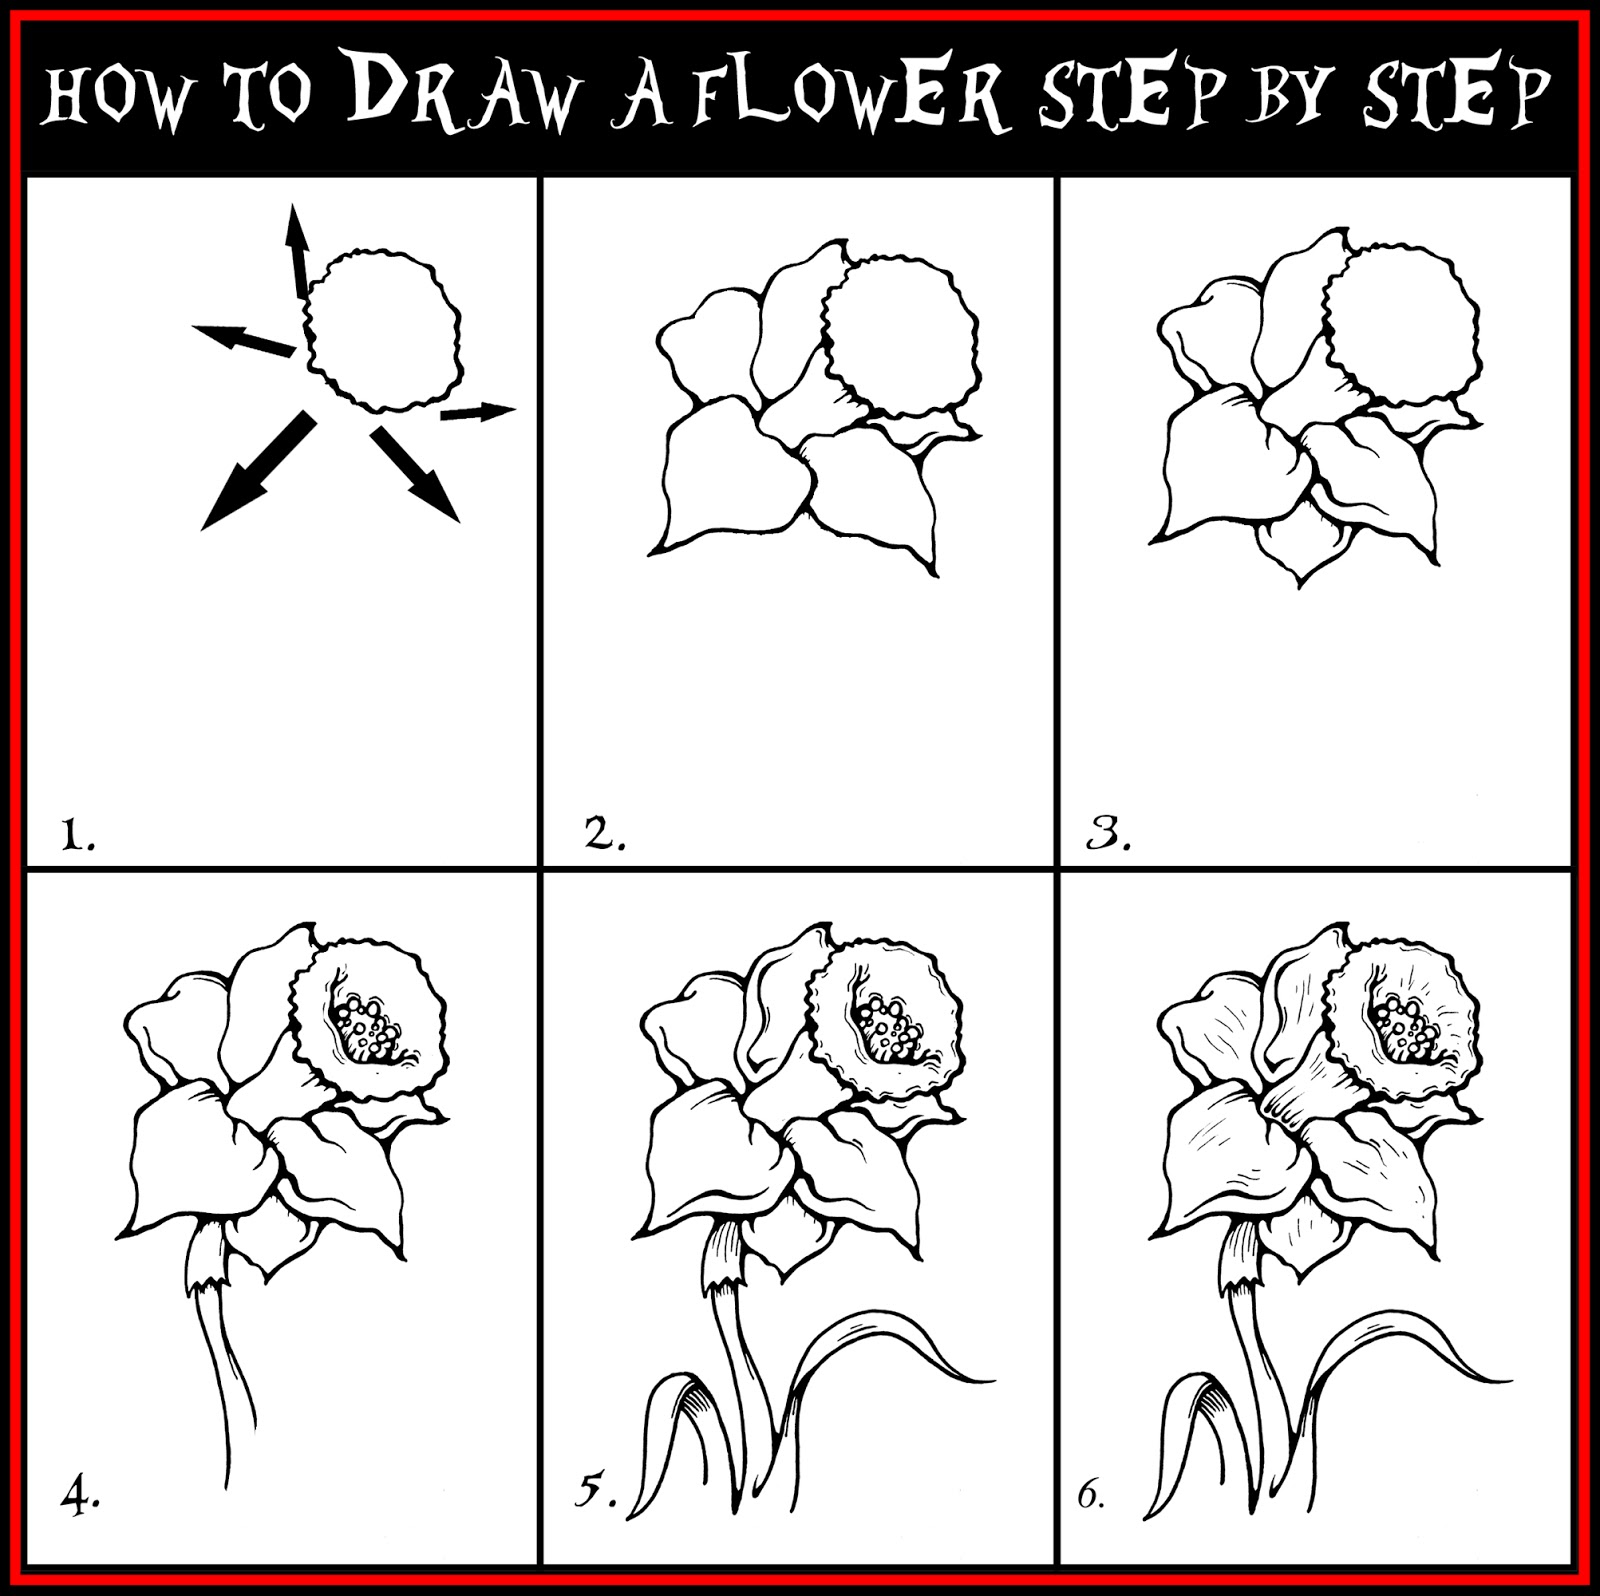 DARYL HOBSON ARTWORK: How To Draw A Flower Step By Step ...